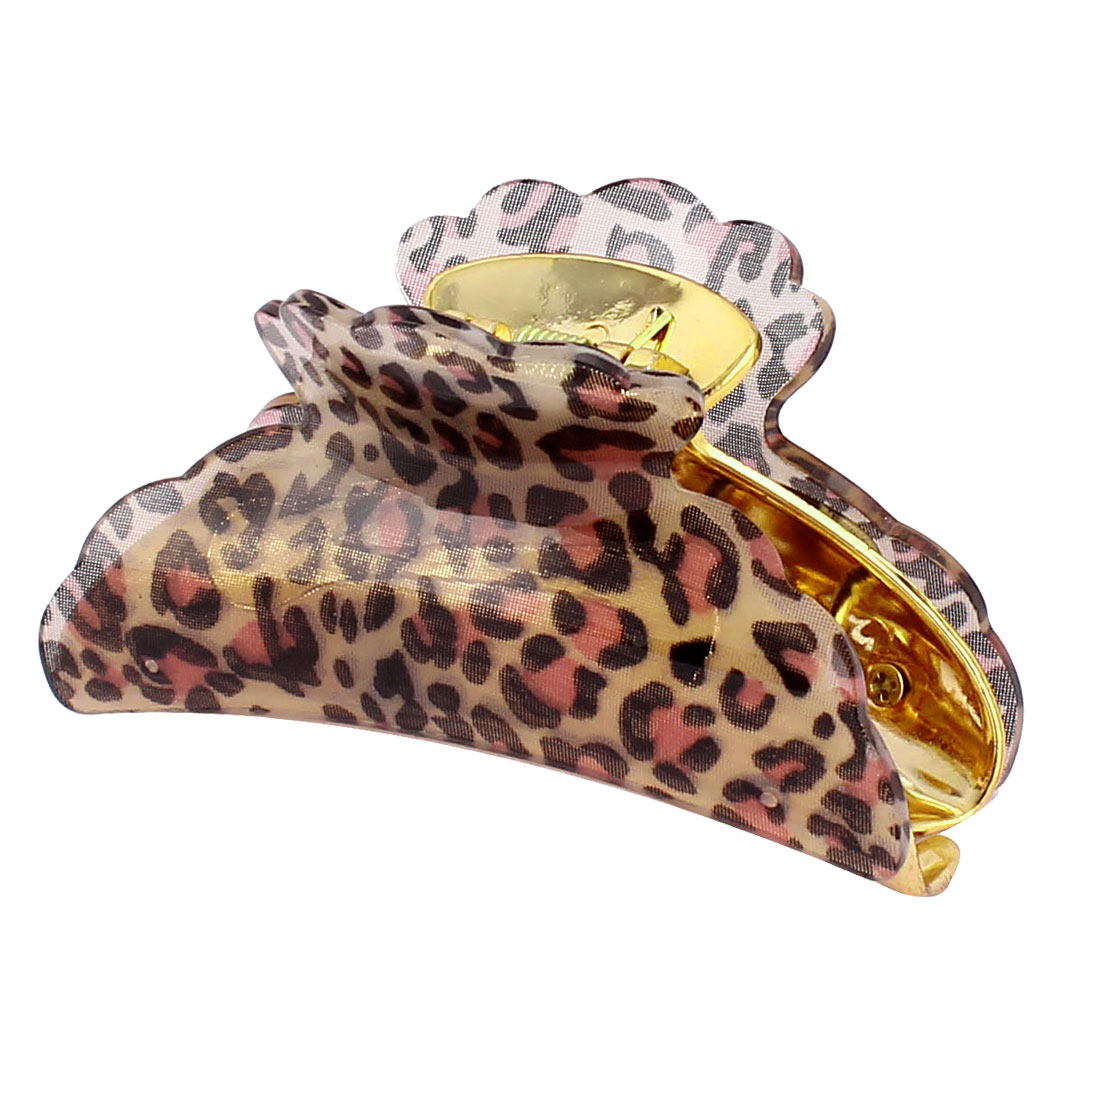 Plastic Teeth Design Leopard Pattern Hair Claw Clamp Hairclip Black Pink for Women